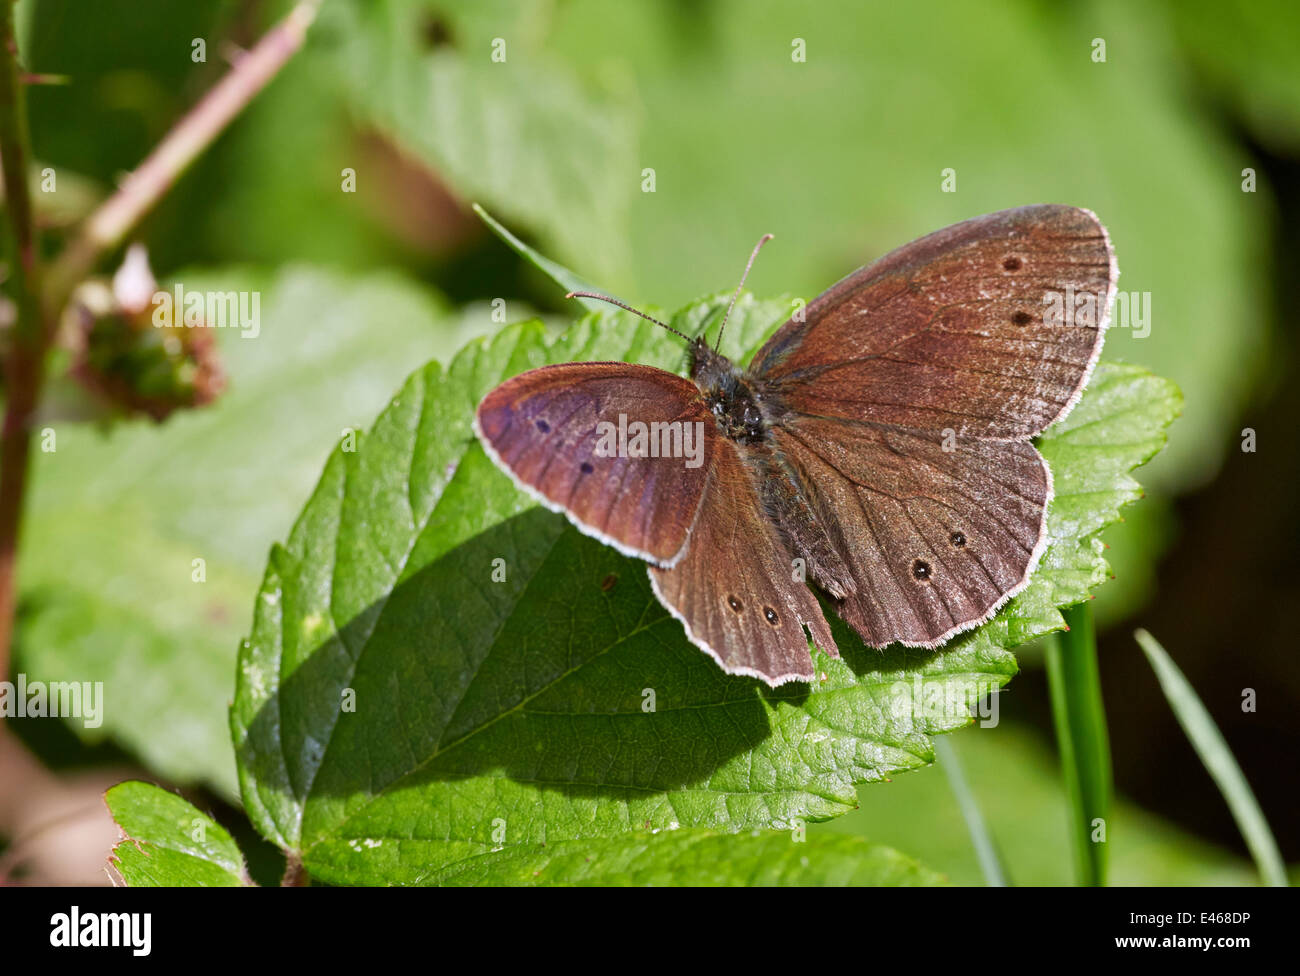 Ringlet butterfly resting on leaf. Bookham Common, Surrey, England. - Stock Image